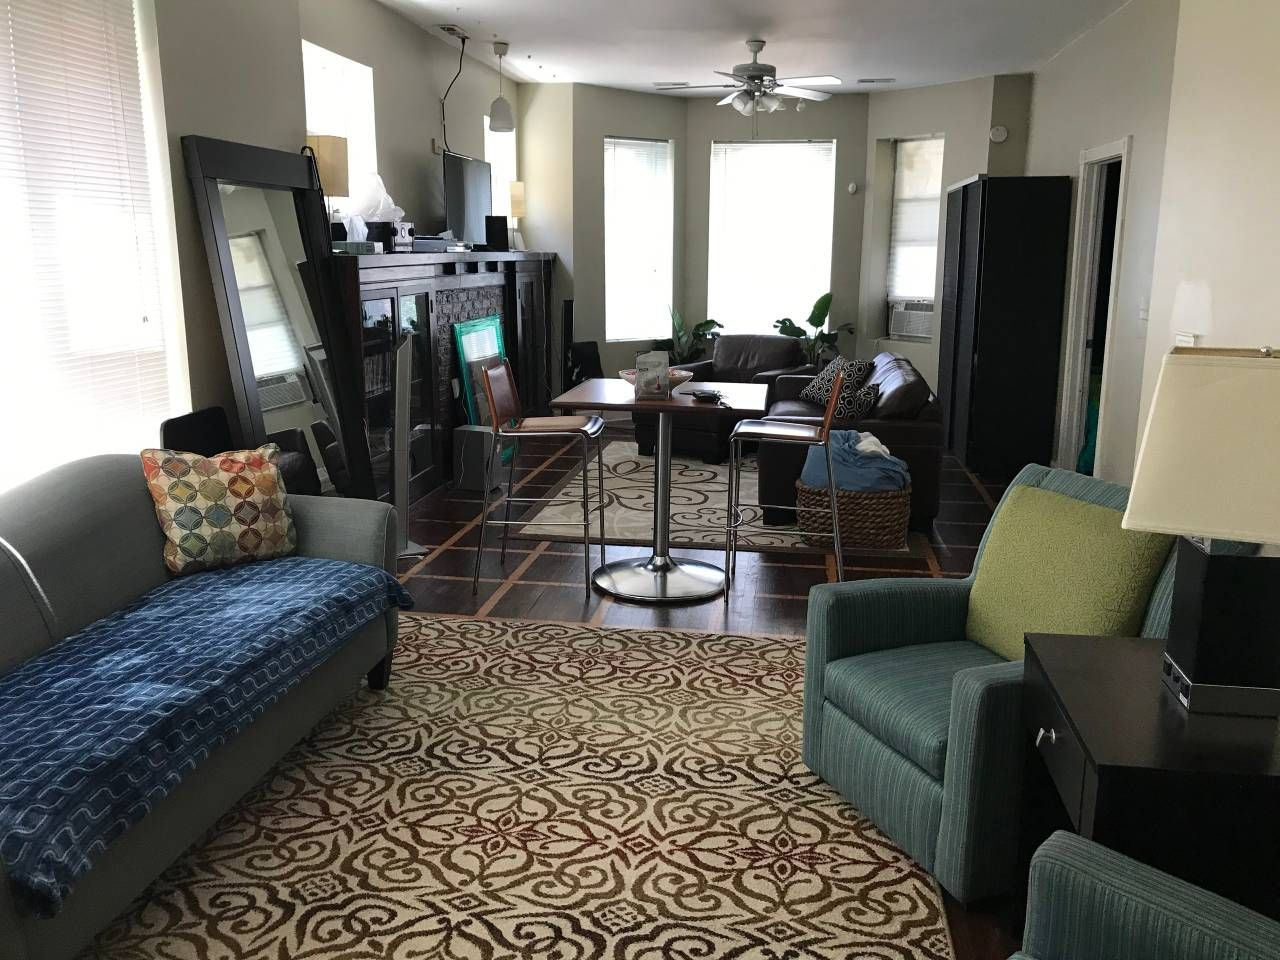 Beautiful 3 Bedroom Apt Woodlawn Hyde Park Area Apartments For Rent In Chicago Illinois U Chicago Apartments For Rent Apartments For Rent Chicago Apartment